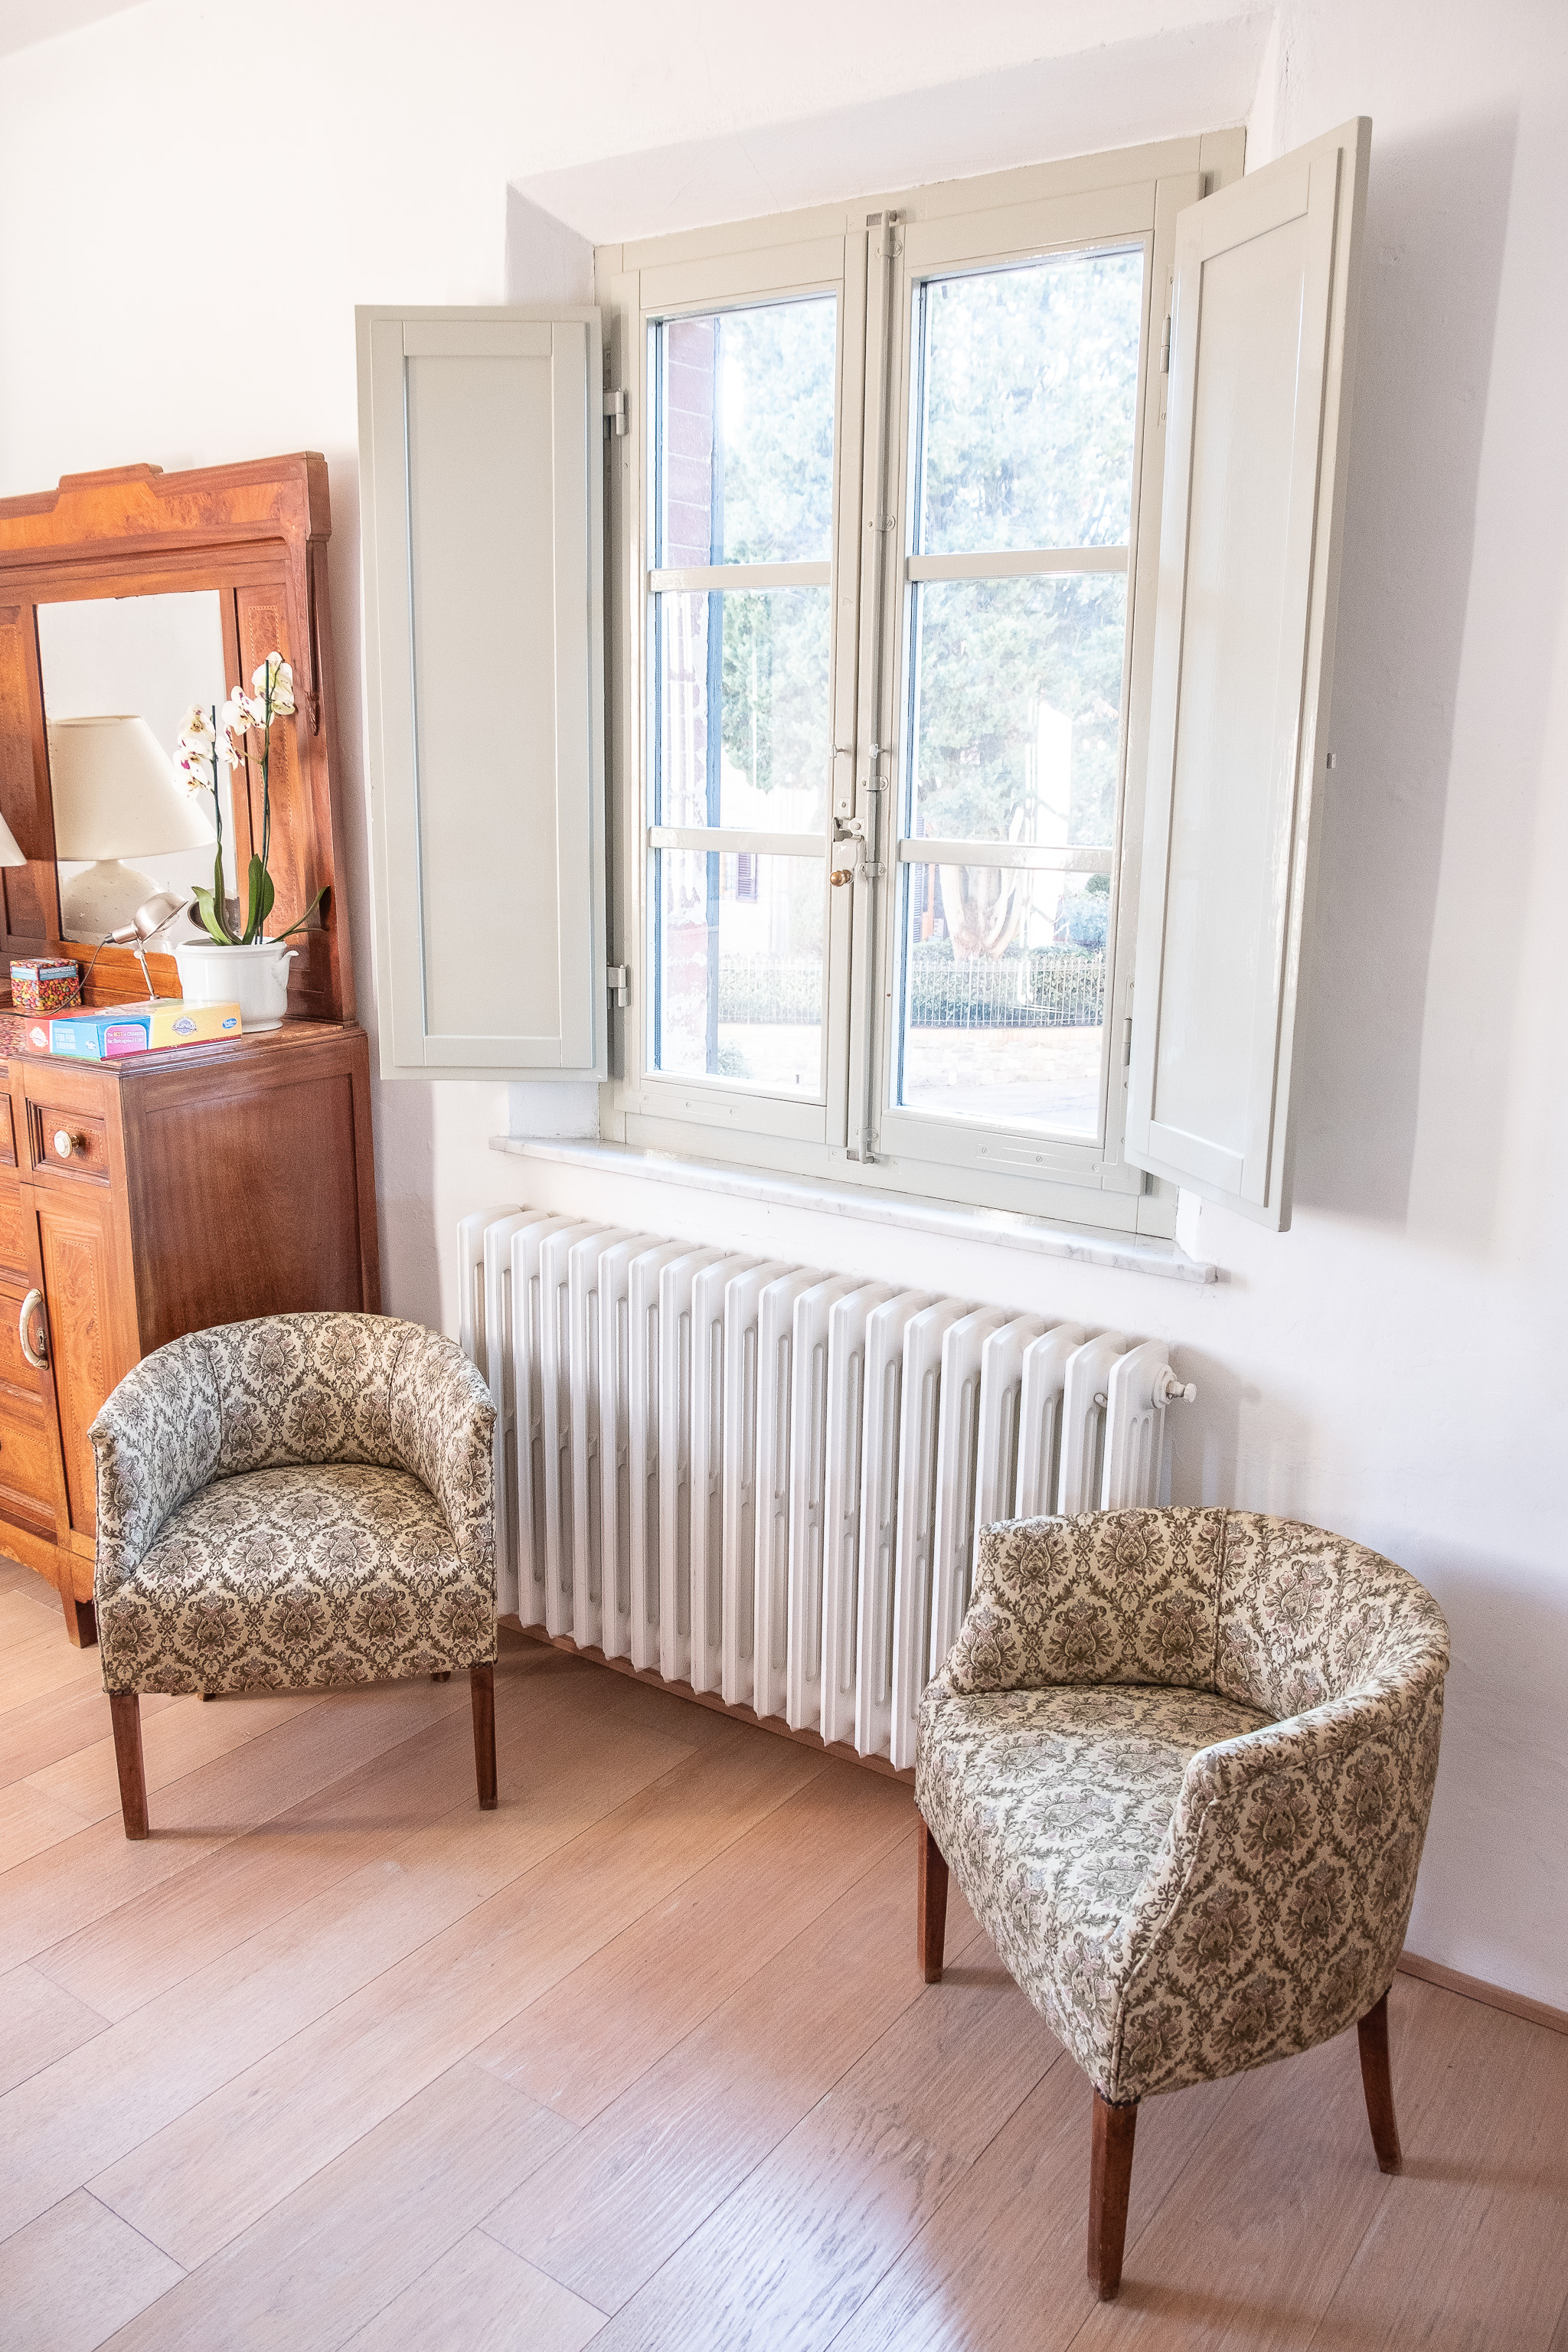 Those chairs by the window…just gorgeous.